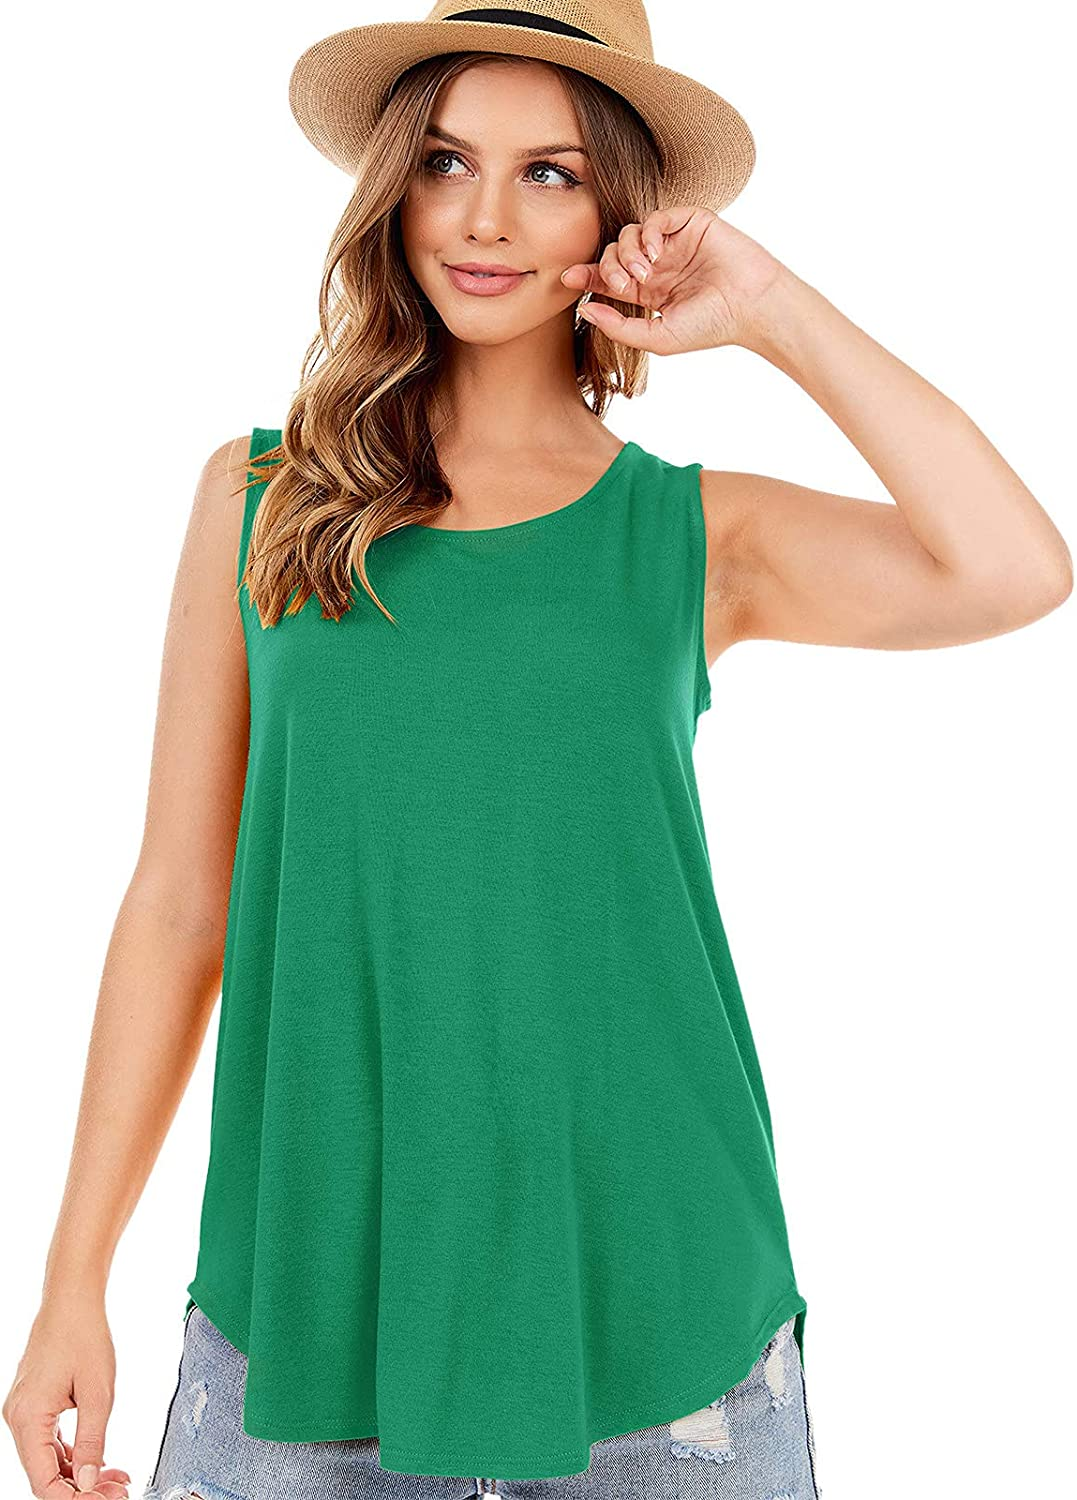 Tank Tulsa Mall Tops for Genuine Women Solid Loose Sleeveless Color Crewneck V